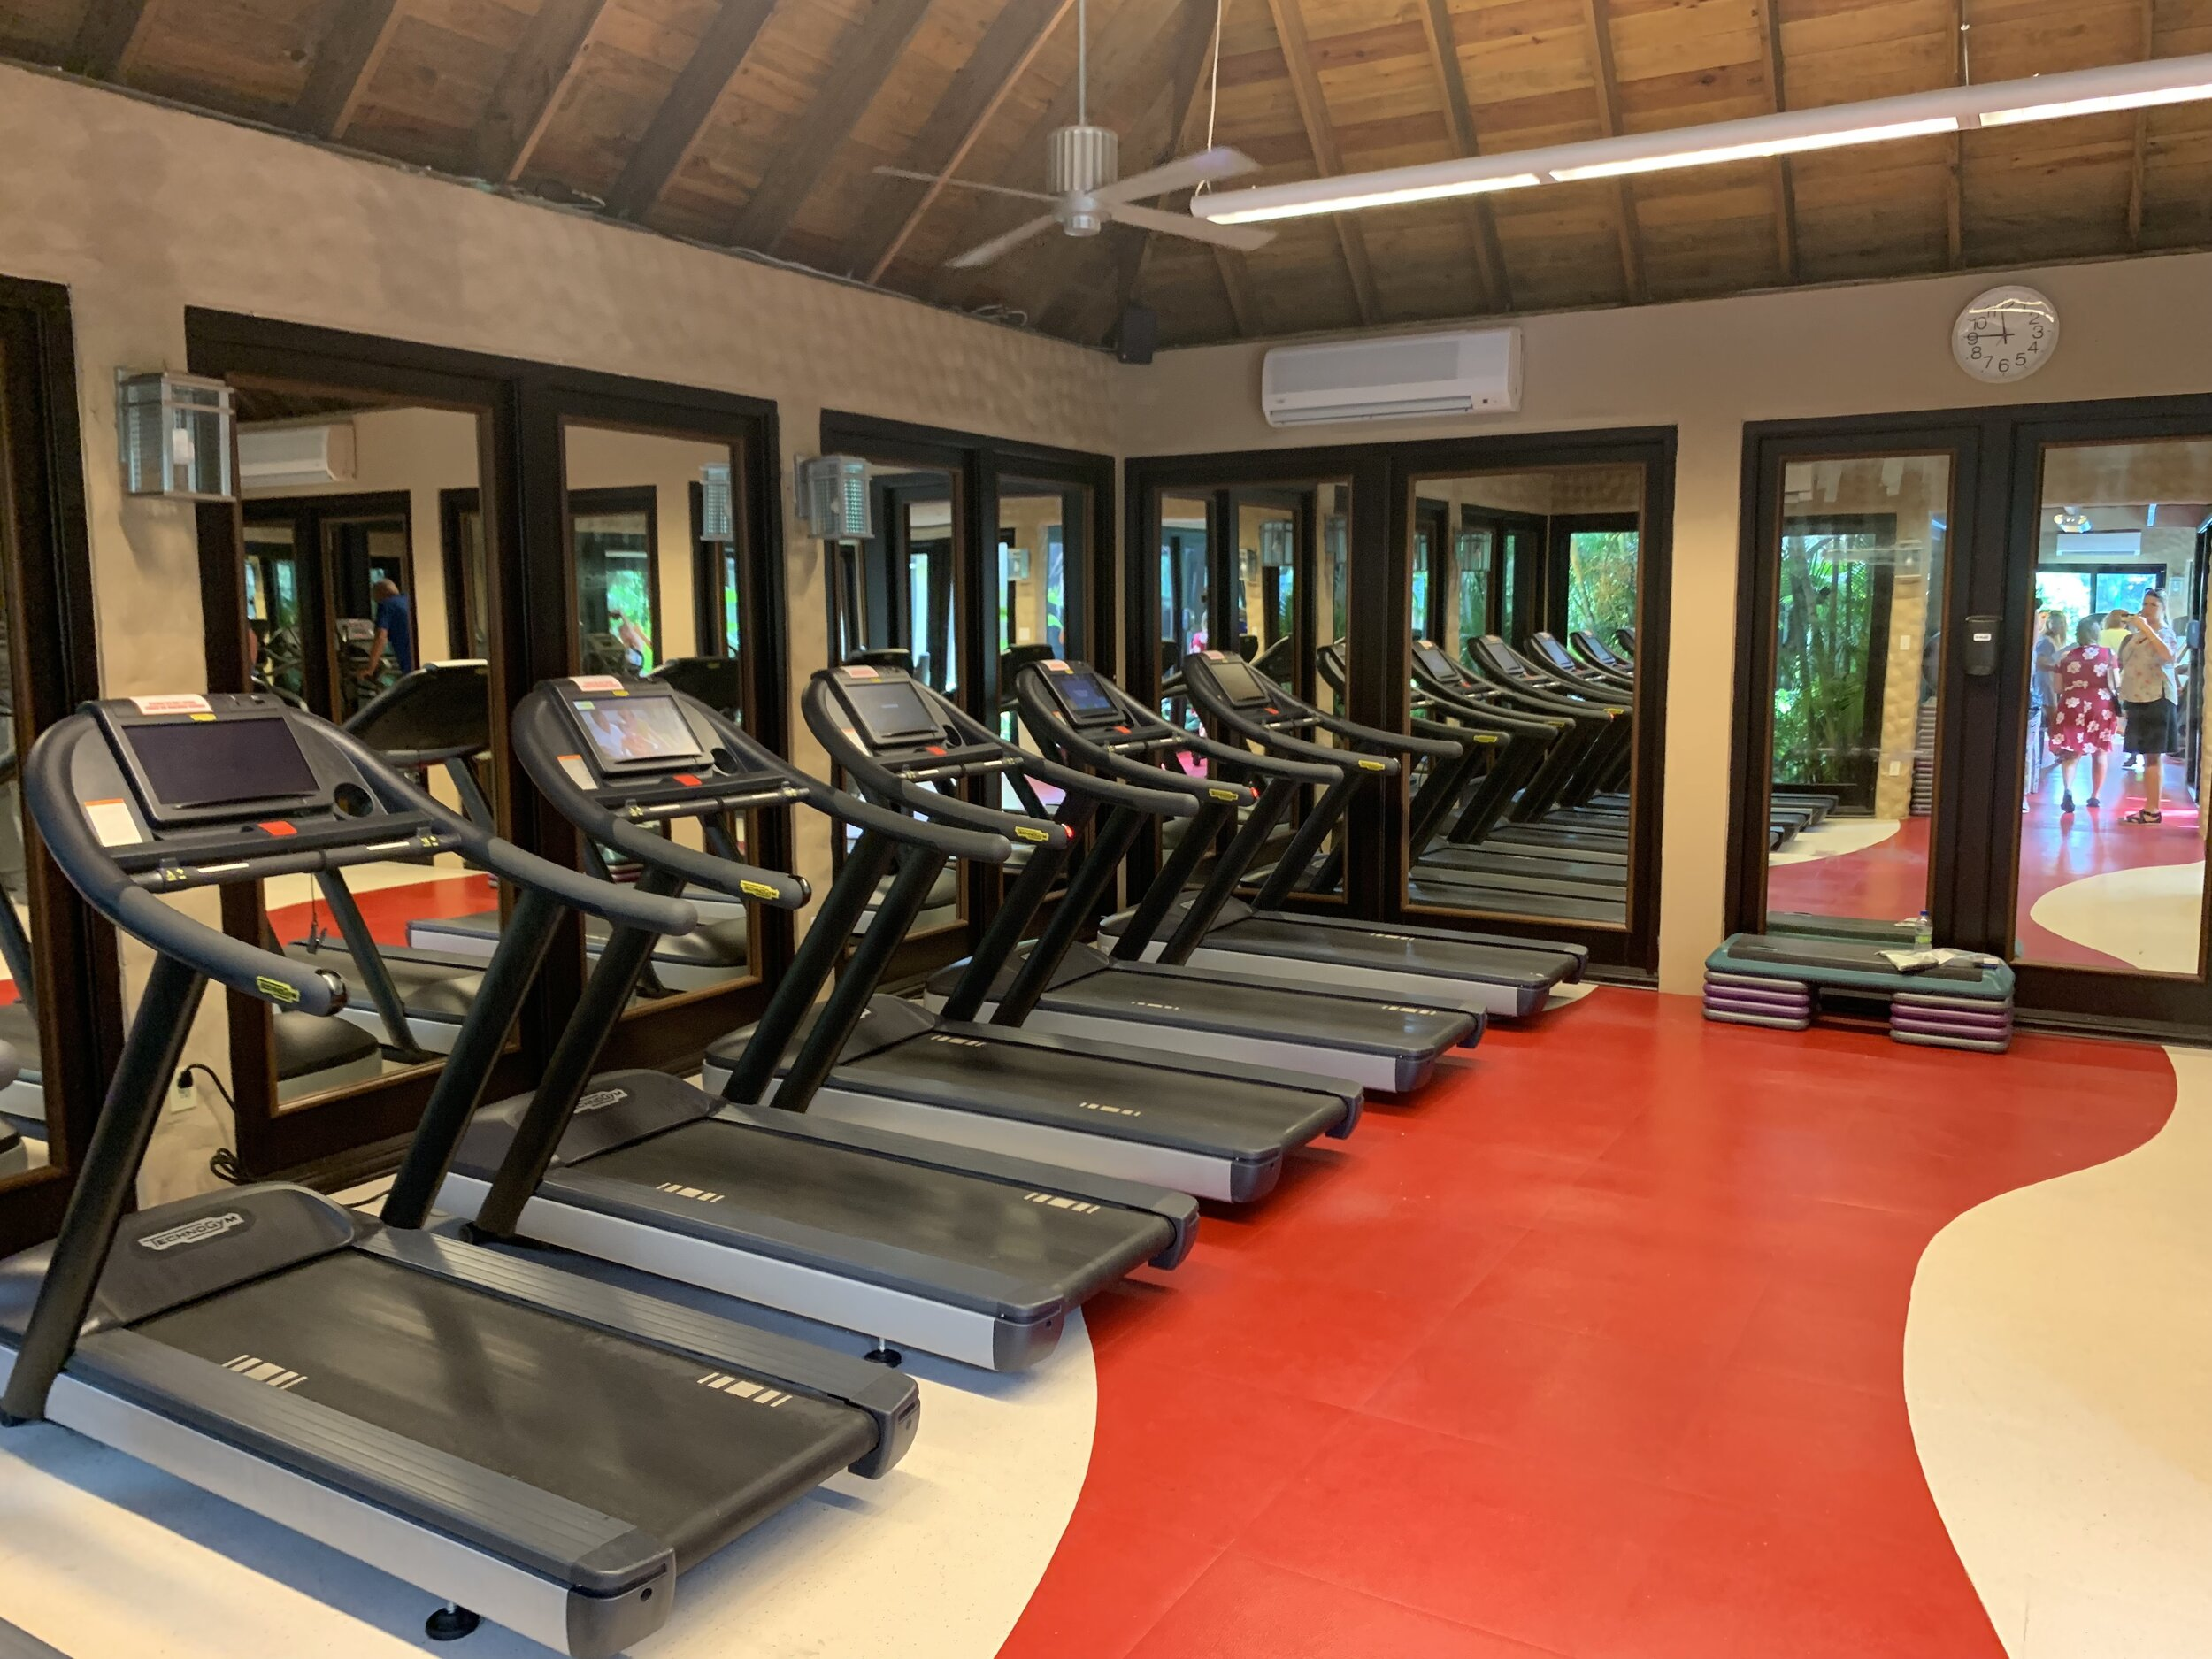 Red Lane Fitness Center